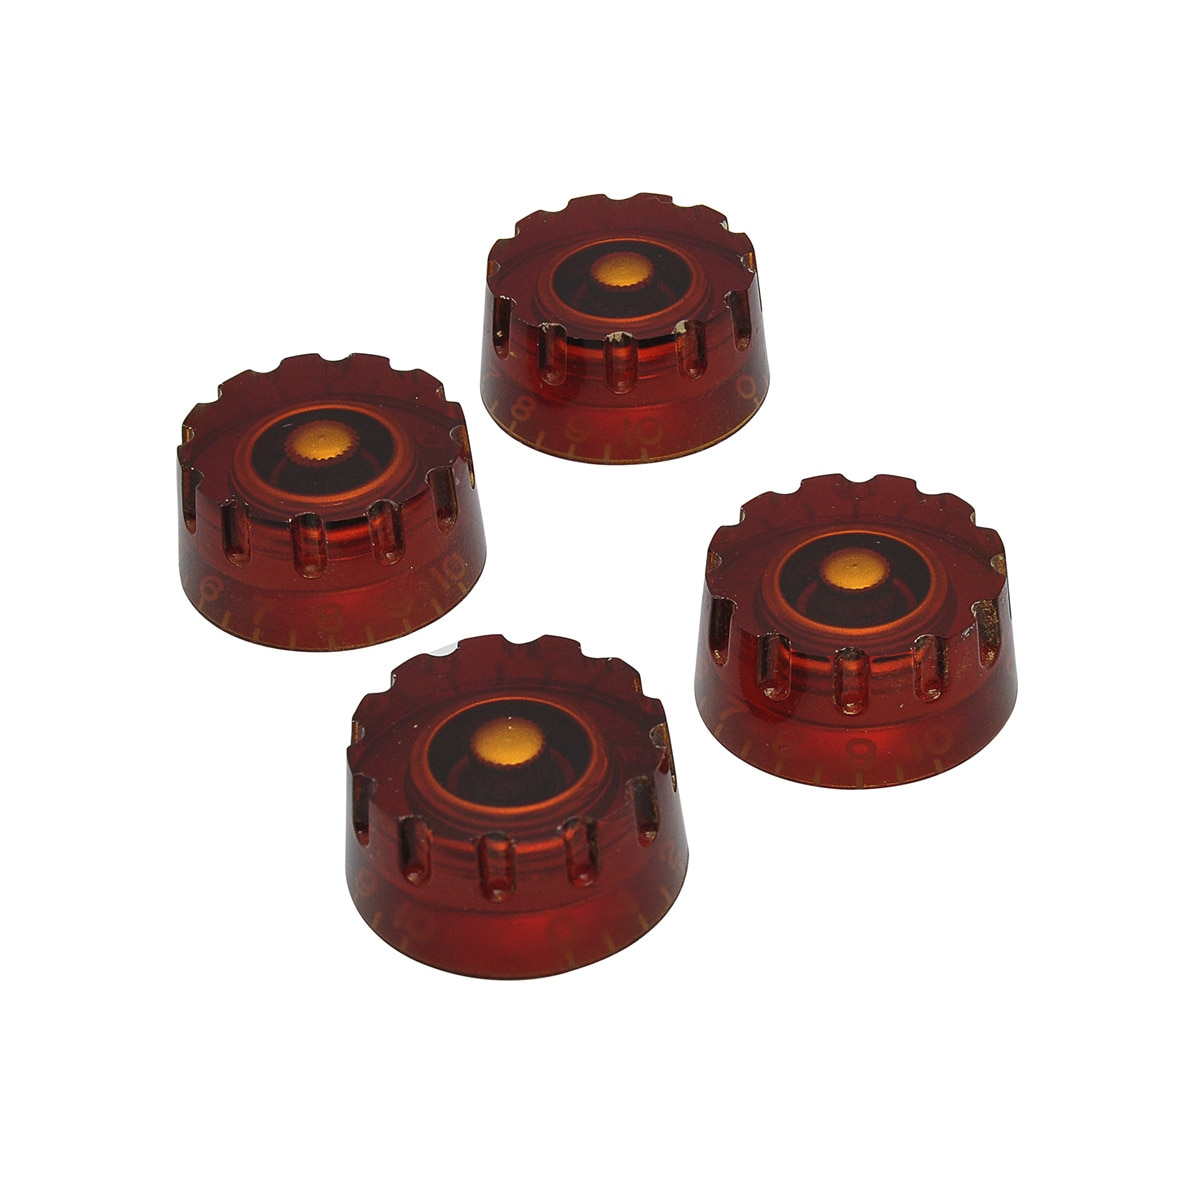 Musiclily Pro Inch Size Knurled Guitar Control Speed Knobs Compatible with USA Made Les Paul Electric Guitar, Amber (Set of 4)